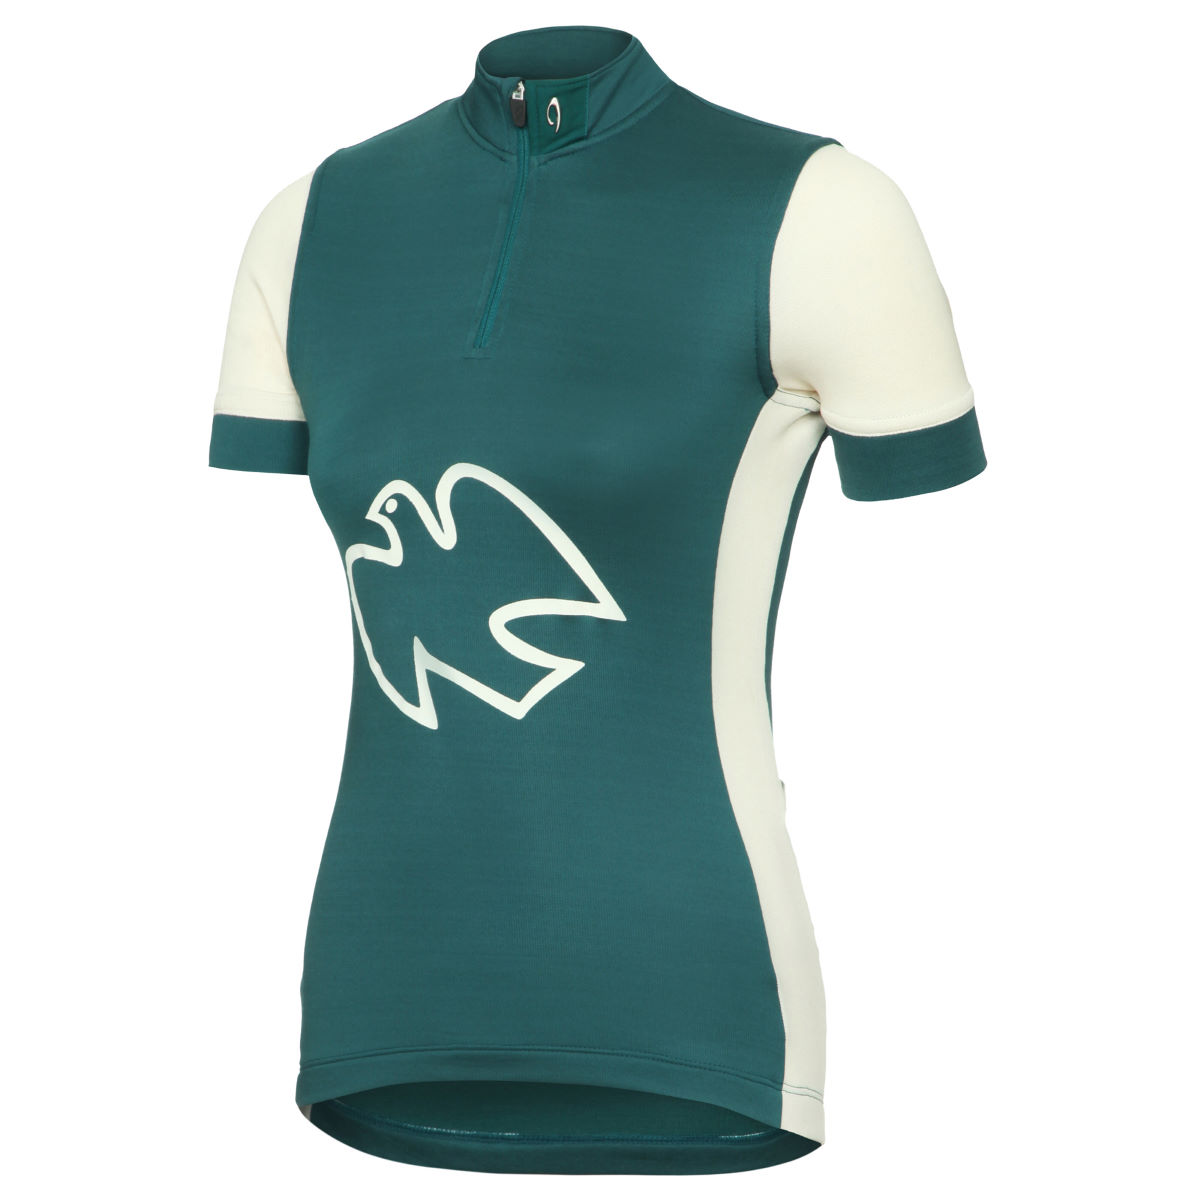 Maillot cycliste Femme Isadore Peace (manches courtes) - Medium